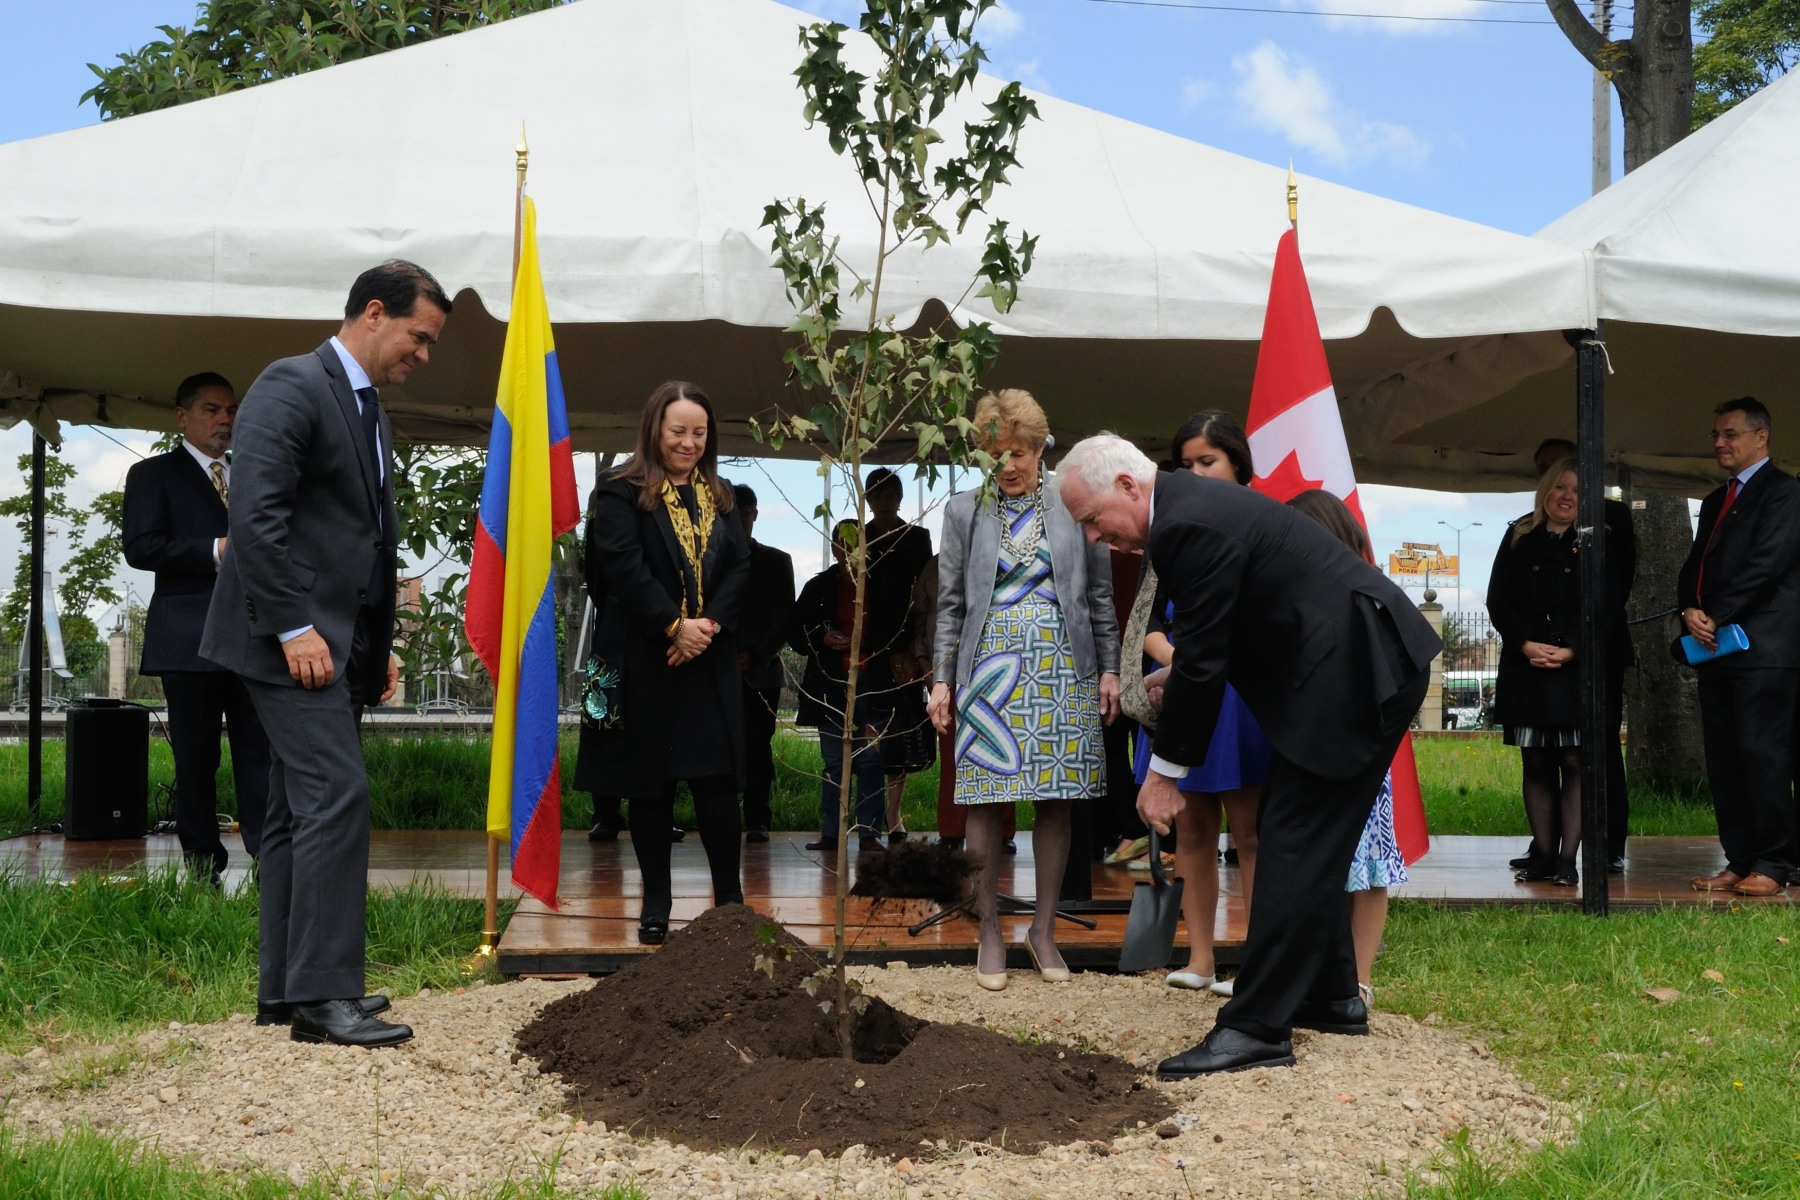 As a symbol of peace and in honour of his visit, the Governor General planted a tree on the grounds of the Museum.